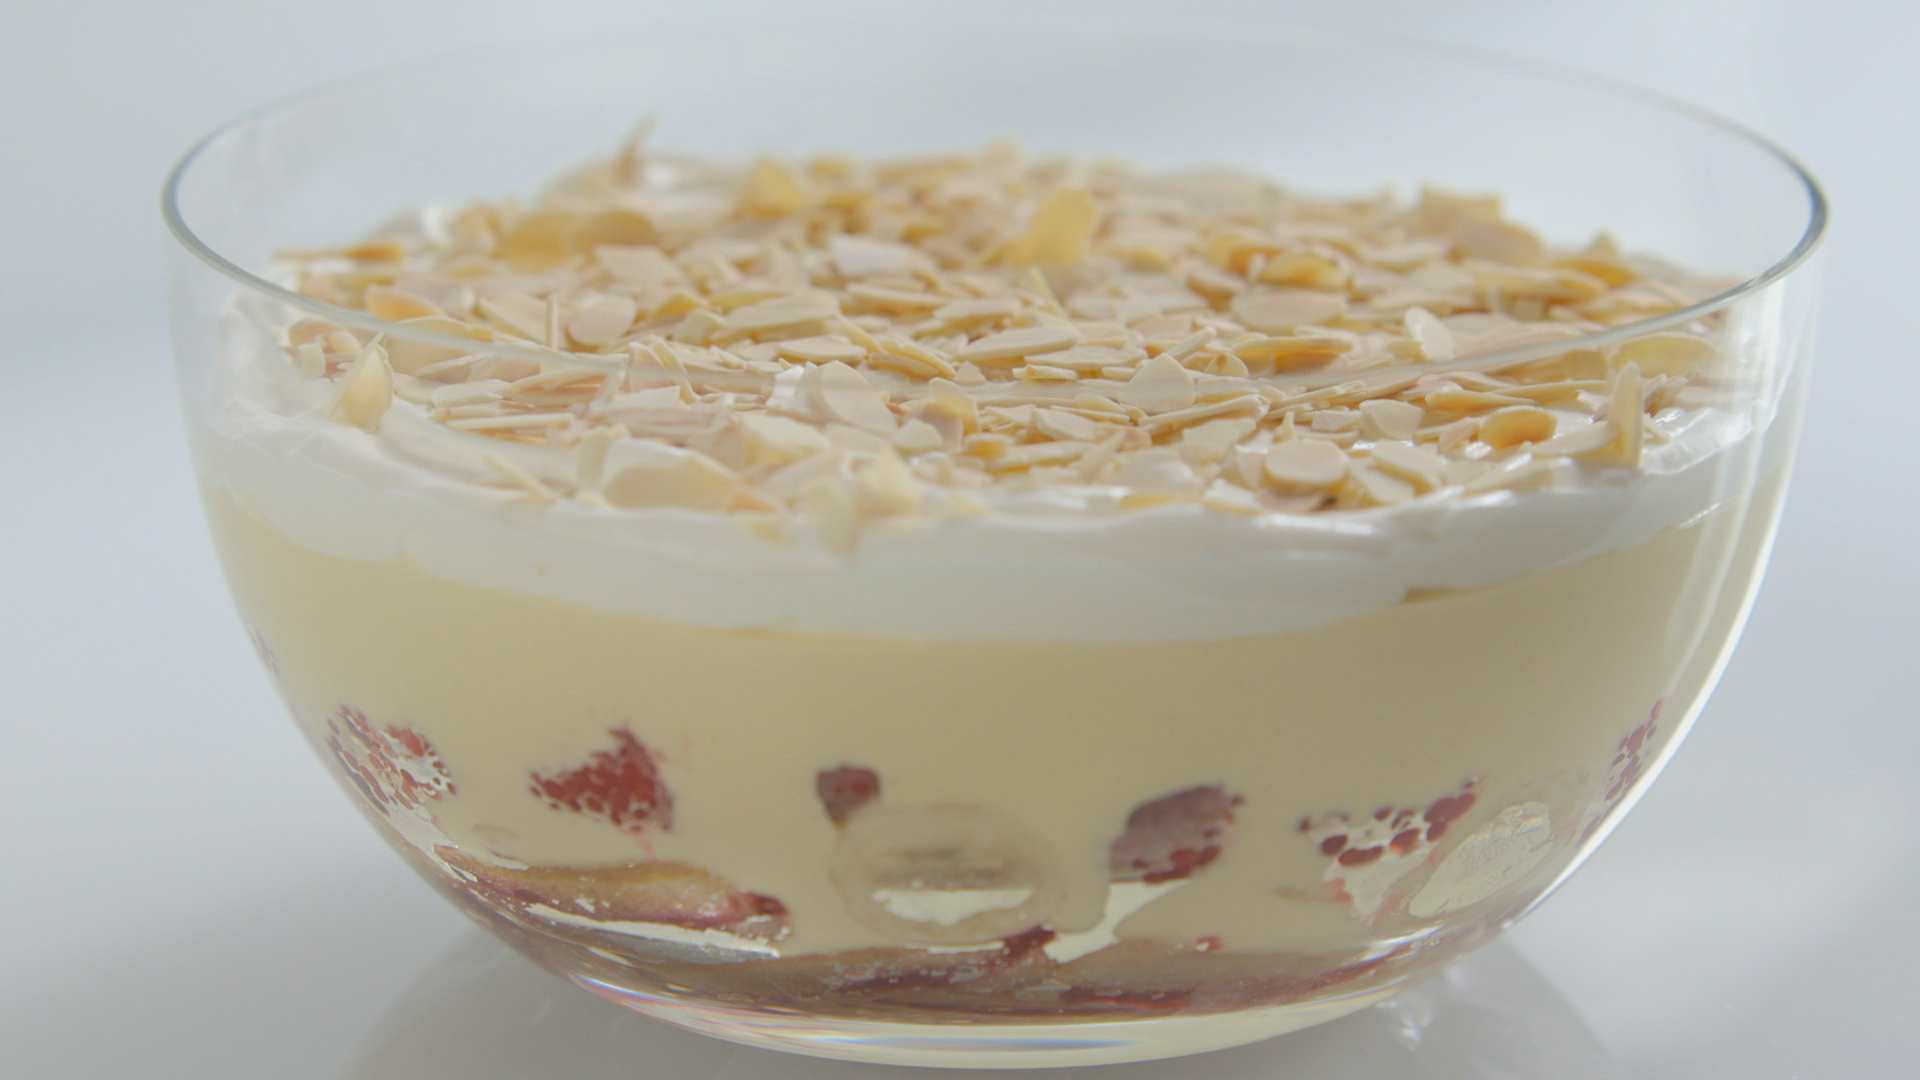 Traditional English Trifle Recipes Delia Online